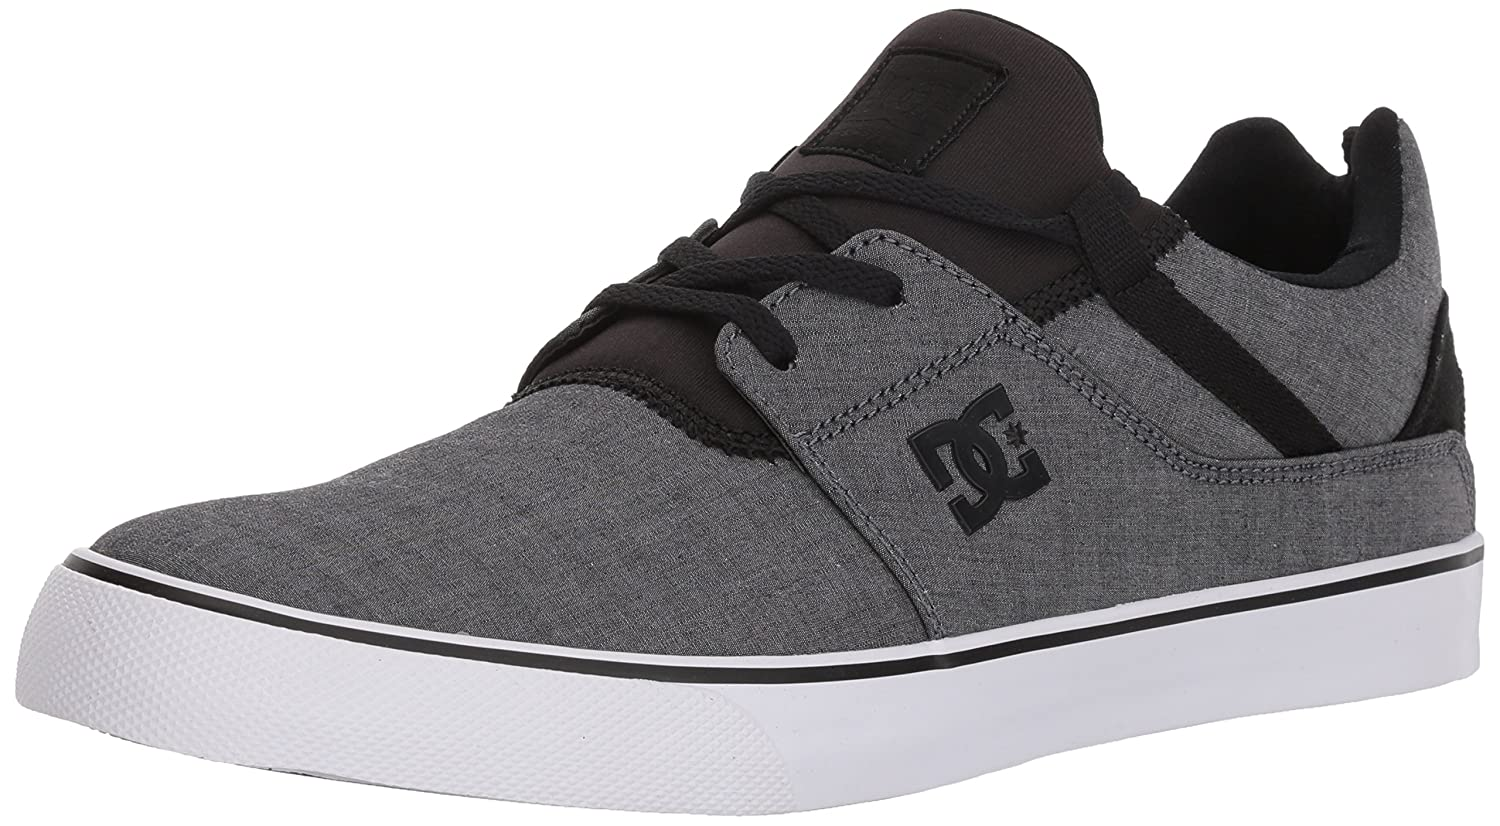 DC - Herren Heathrow V Txse Niedrige Schuhe